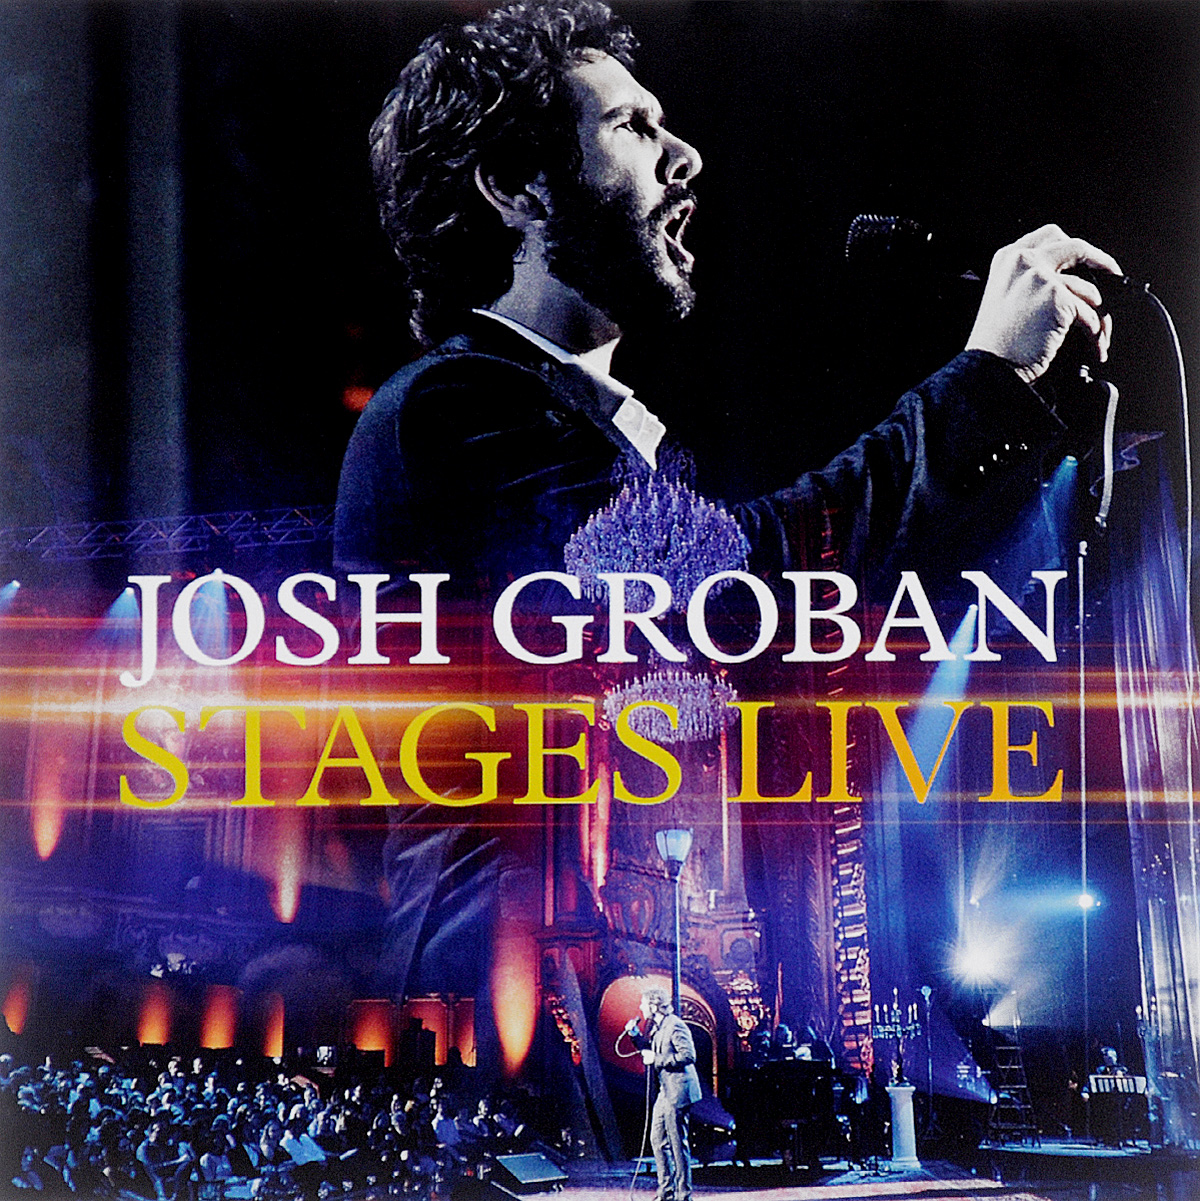 Джош Гробан Josh Groban. Stages Live (CD + DVD) pantera pantera reinventing hell the best of pantera cd dvd